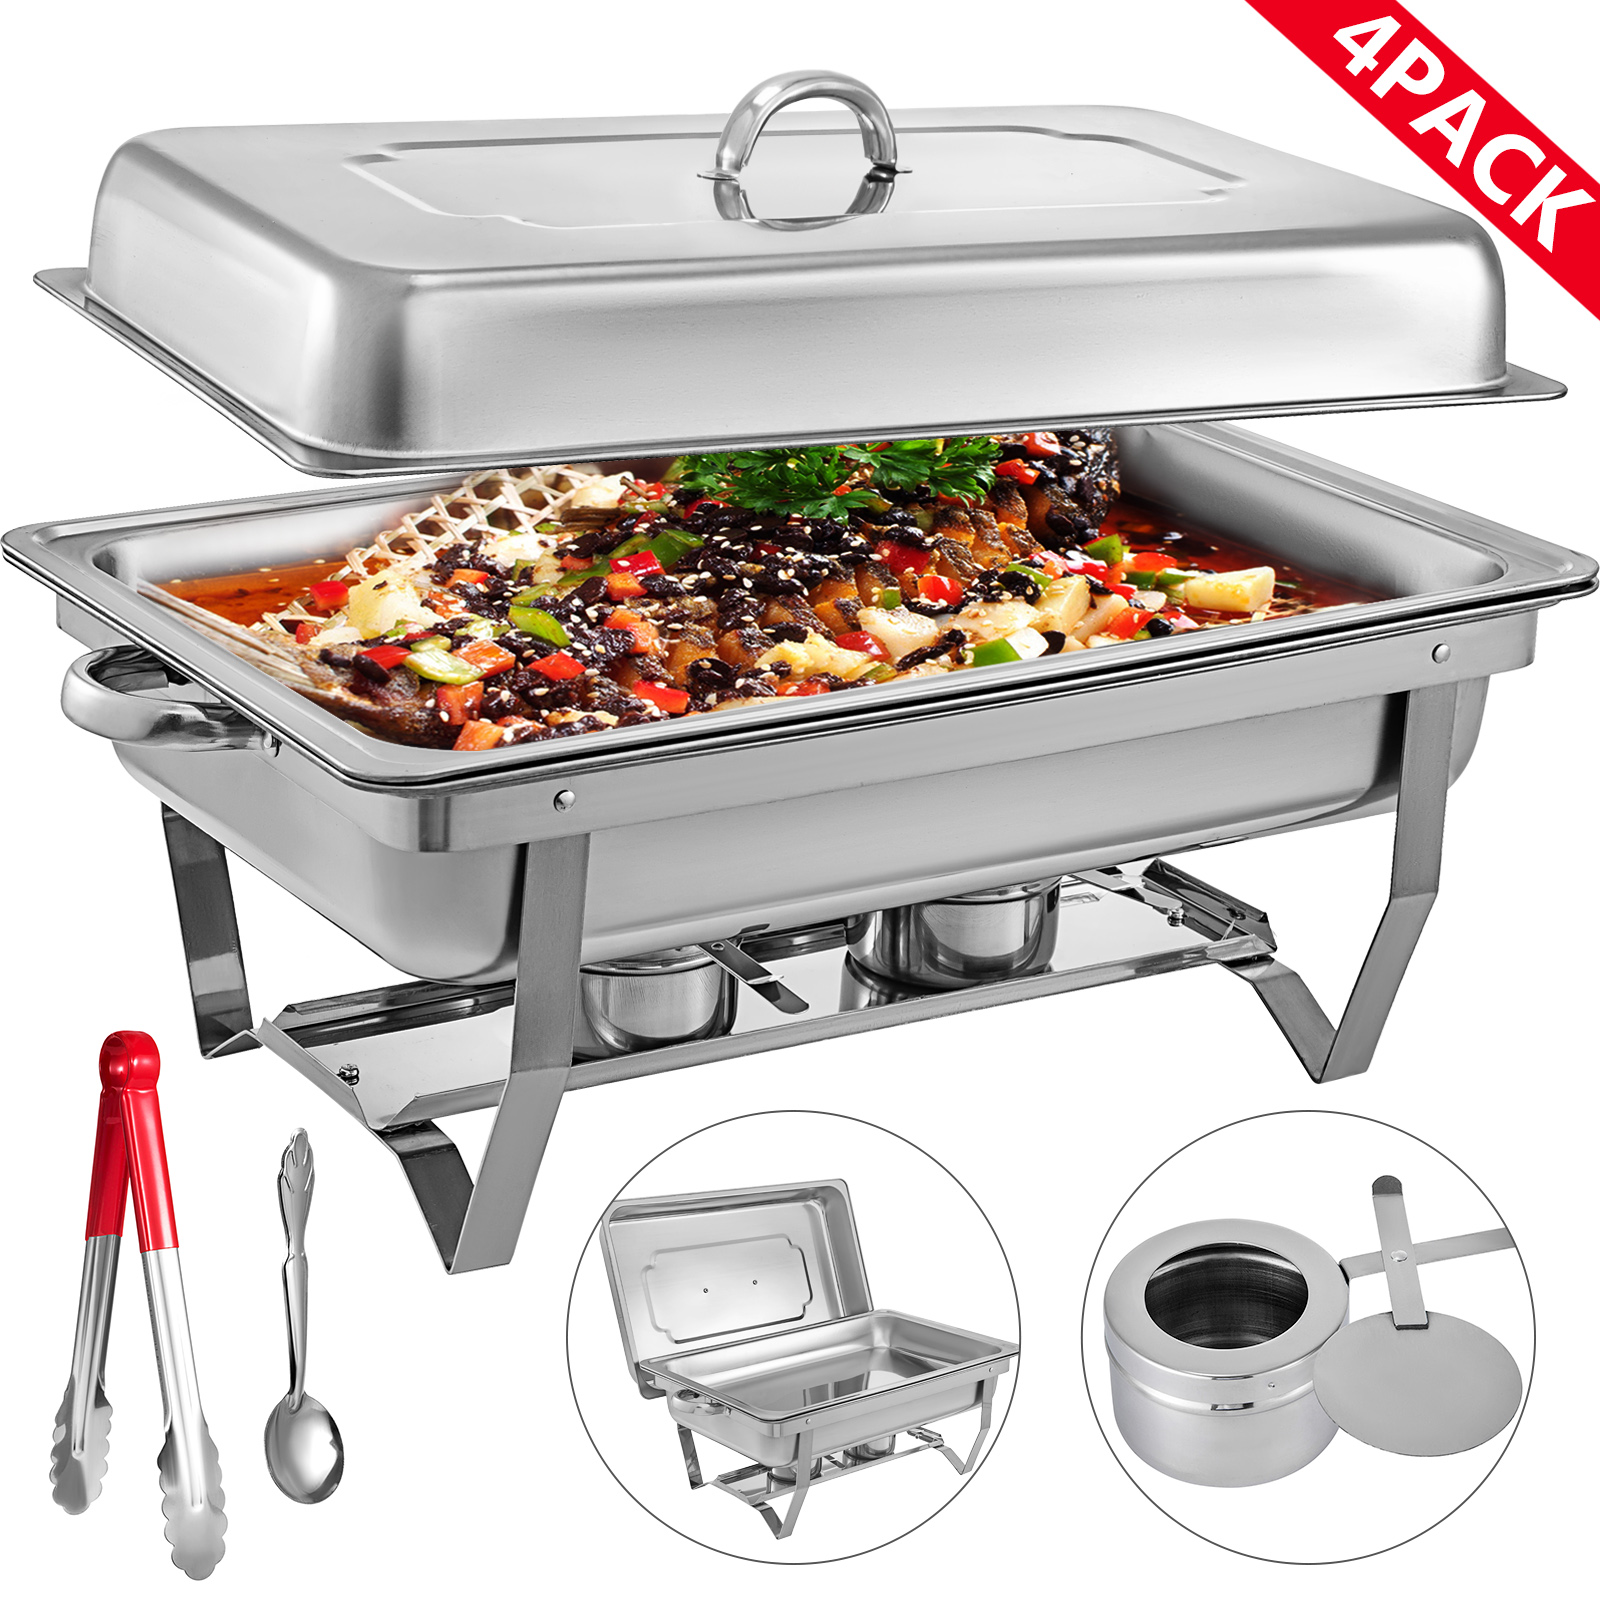 thumbnail 25 - Multi-Stainless-Steel-Chafing-Dish-Bain-Marie-Bow-Catering-Dish-Hotpot-Server